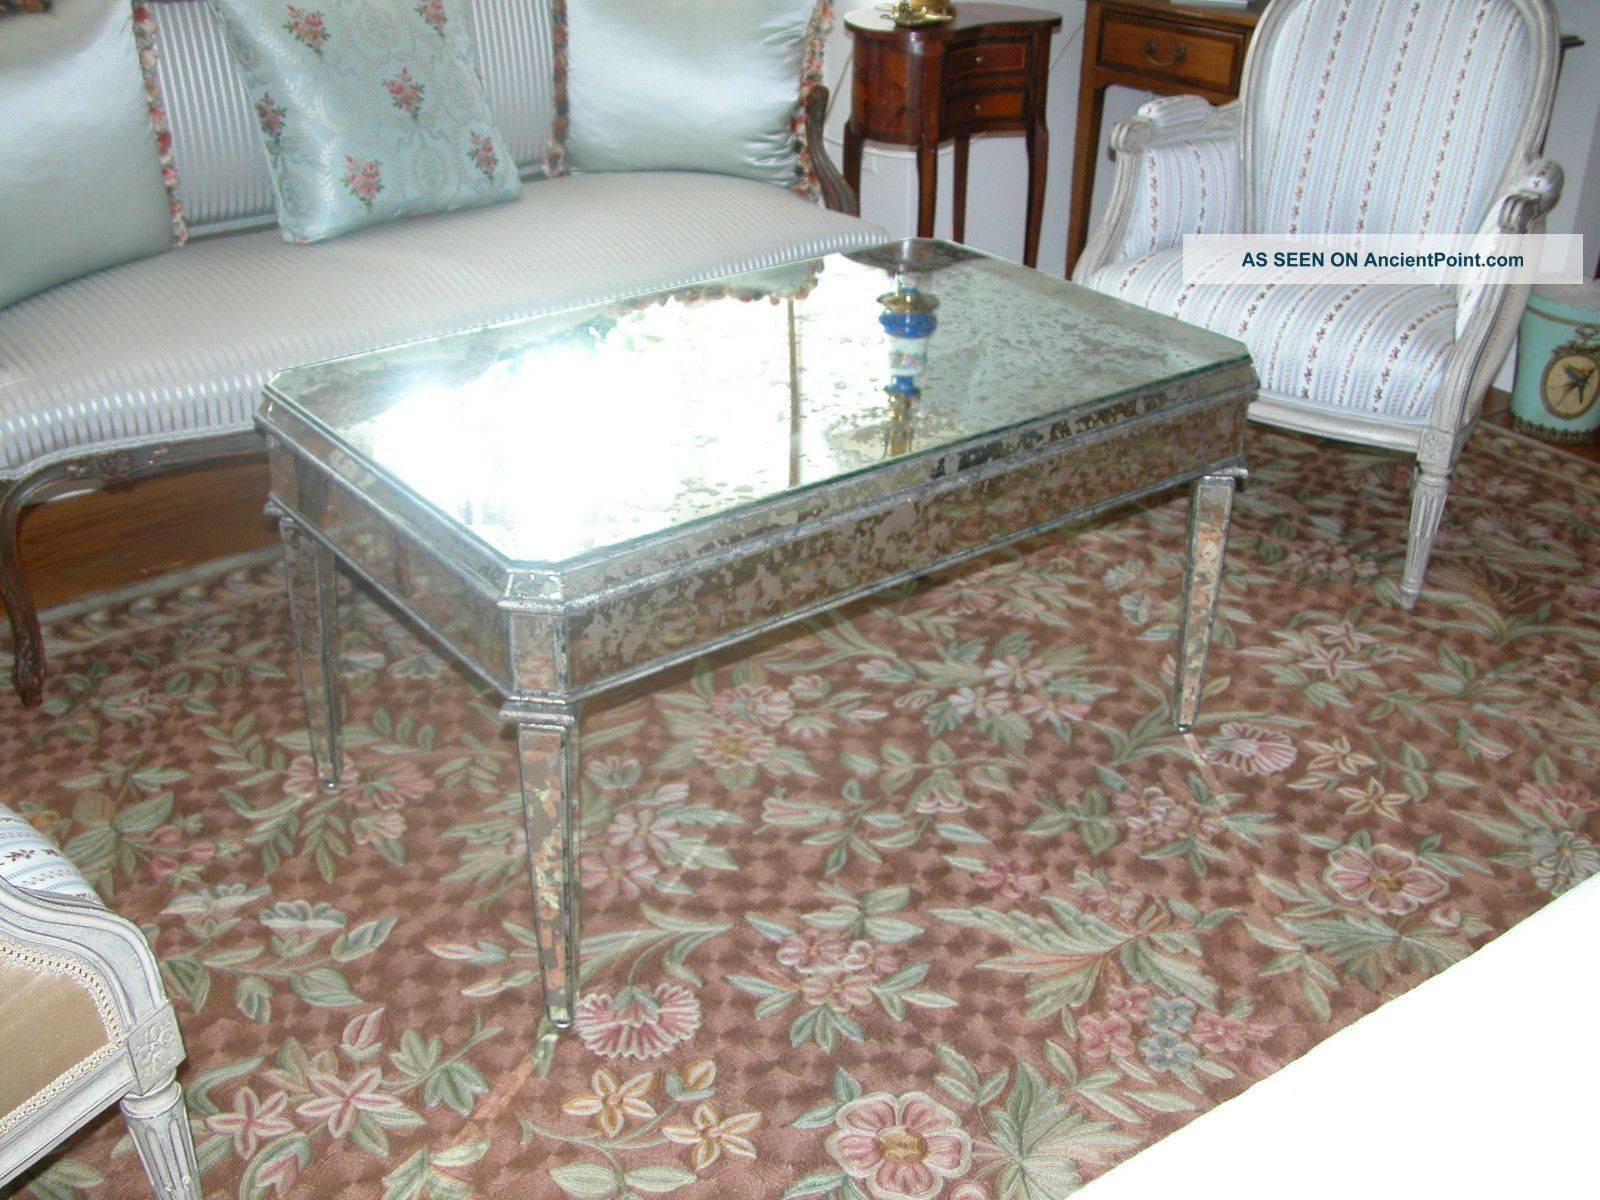 Furniture: Lovely Antique Square Mirrored Coffee Table With Iron throughout Antique Mirrored Coffee Tables (Image 14 of 30)